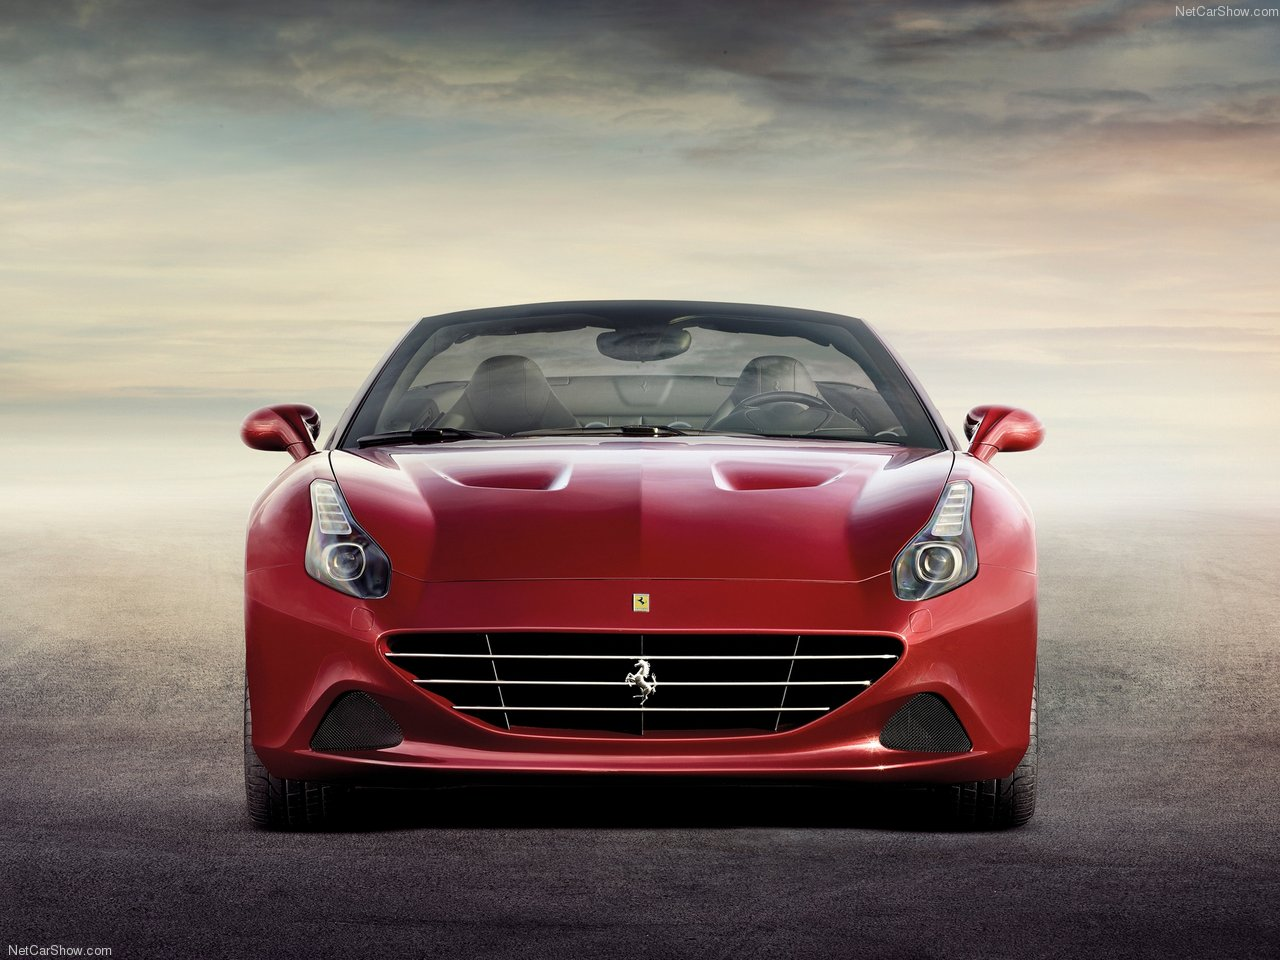 Ferrari-California_T_2015_1280x960_wallpaper_07.jpg